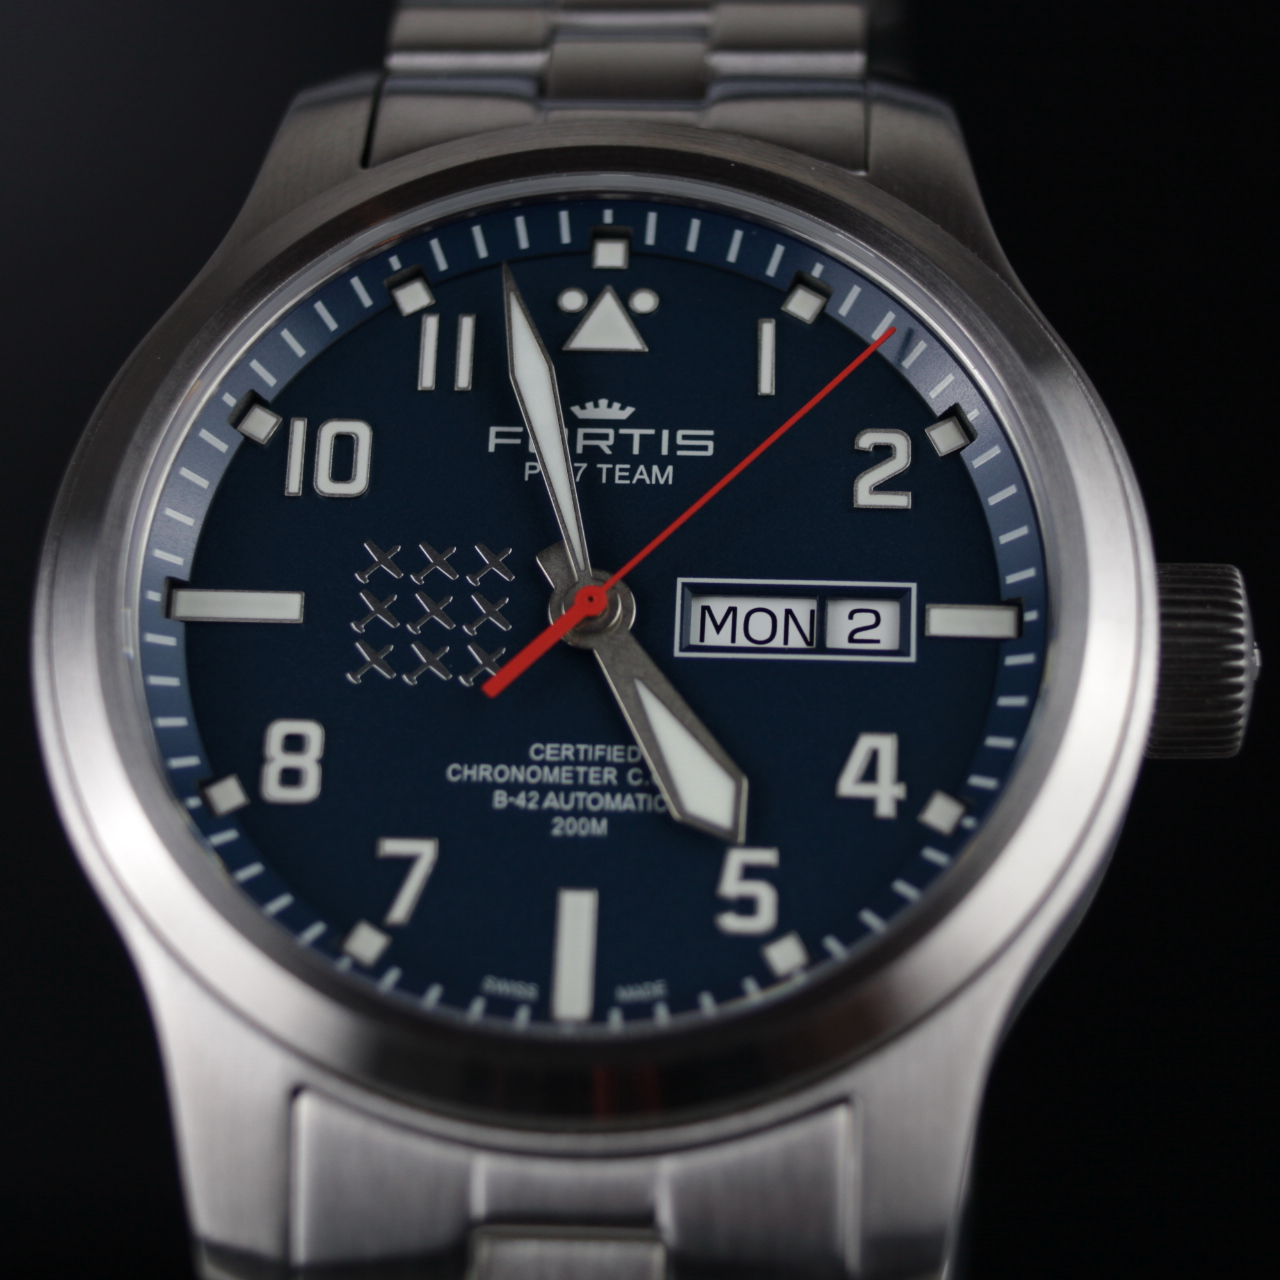 FORTIS AEROMASTER PC7 EDITION DAY-DATE, 655.10.55